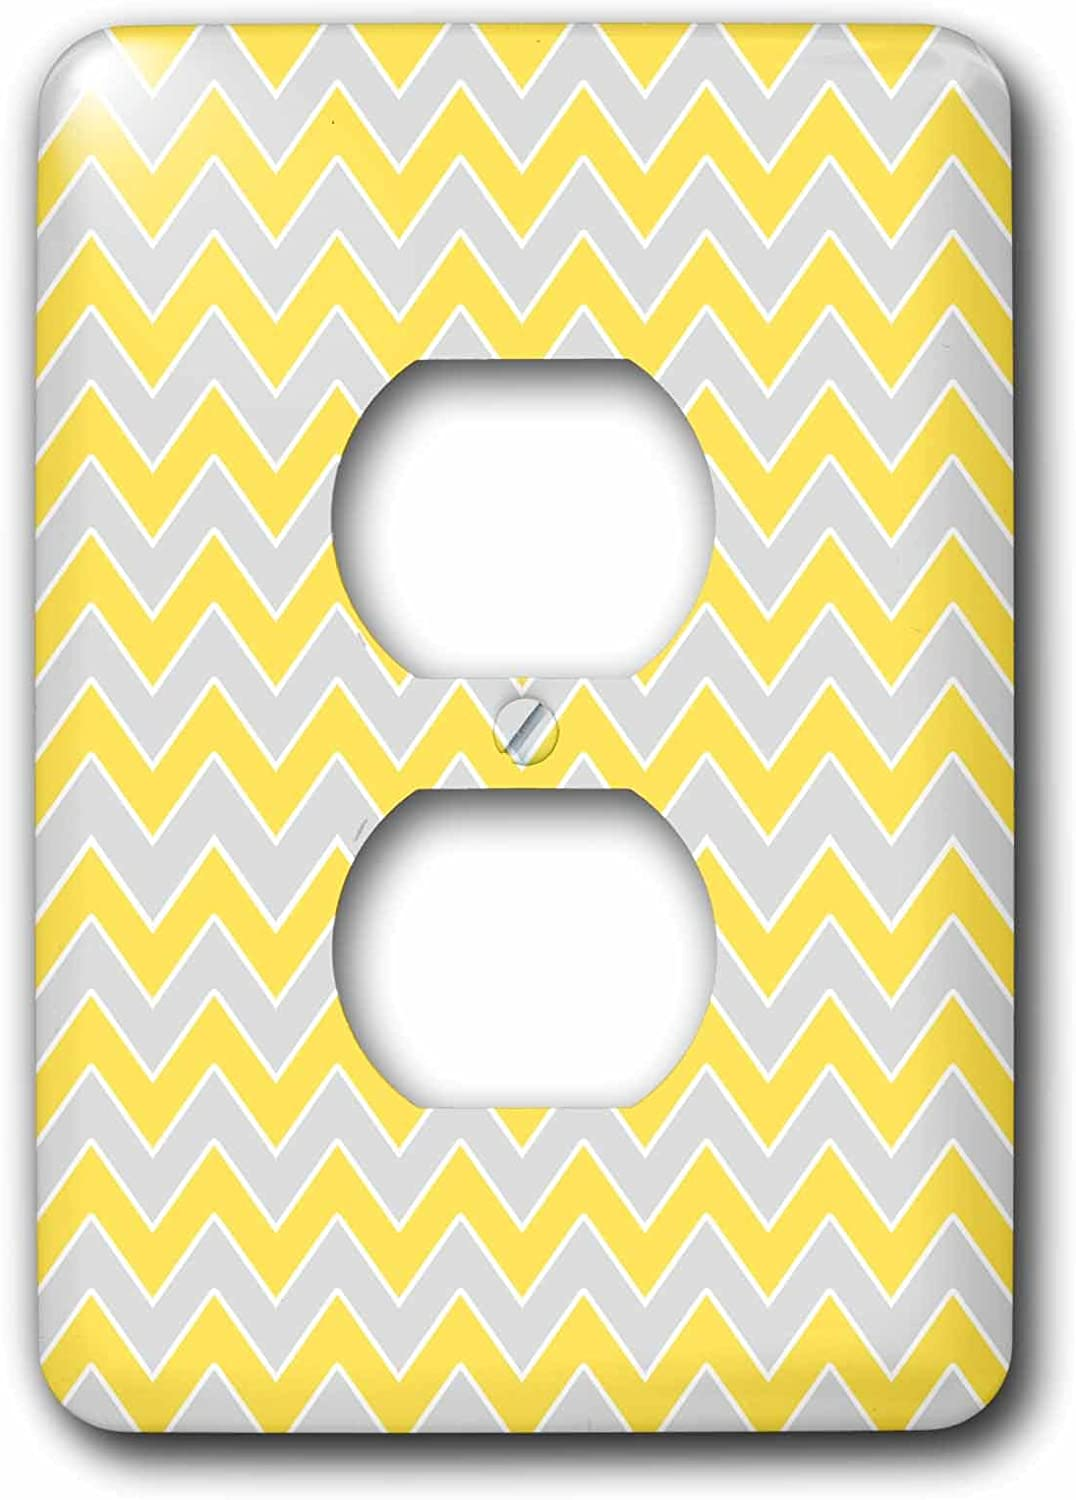 3dRose lsp/_110749/_6 Chevron Pattern Hot Pink And White Zigzag 2 Plug Outlet Cover